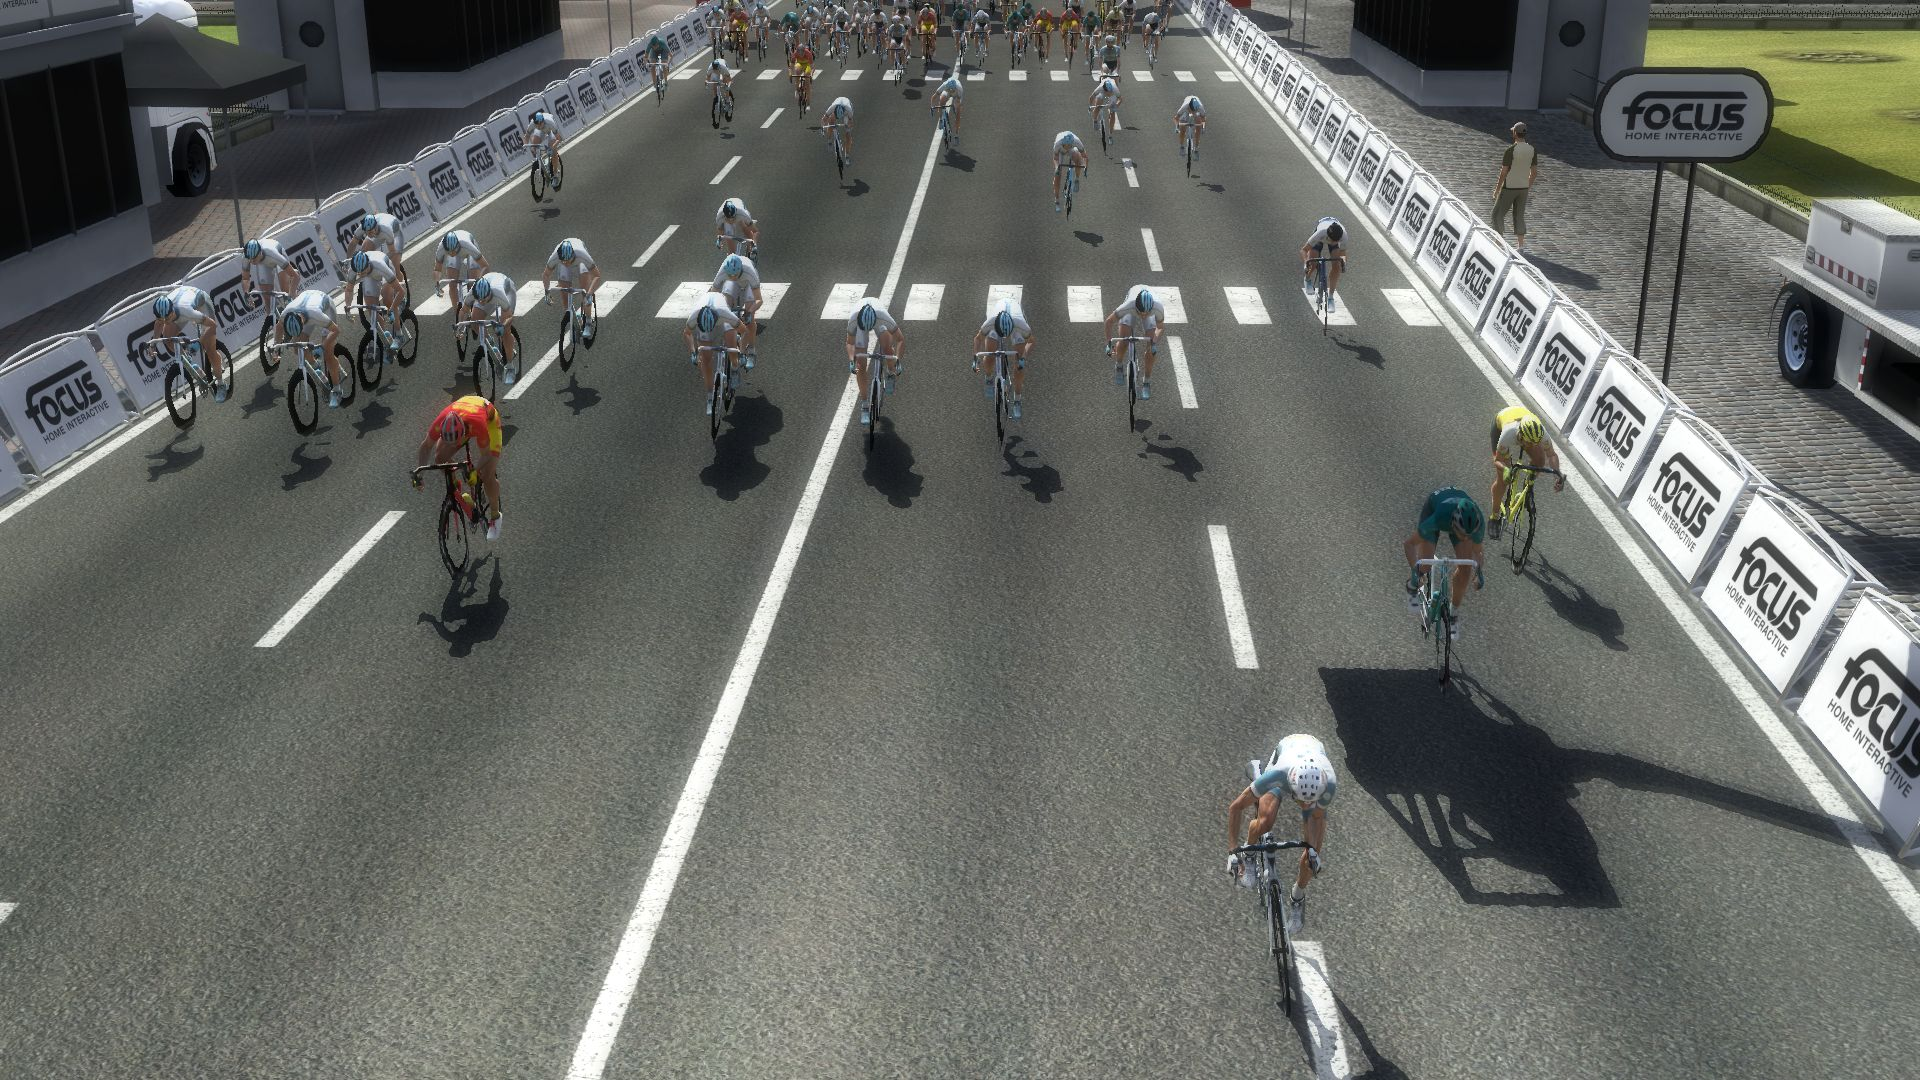 pcmdaily.com/images/mg/2019/Races/Other/NC/CRC/CRCRR%202.jpg